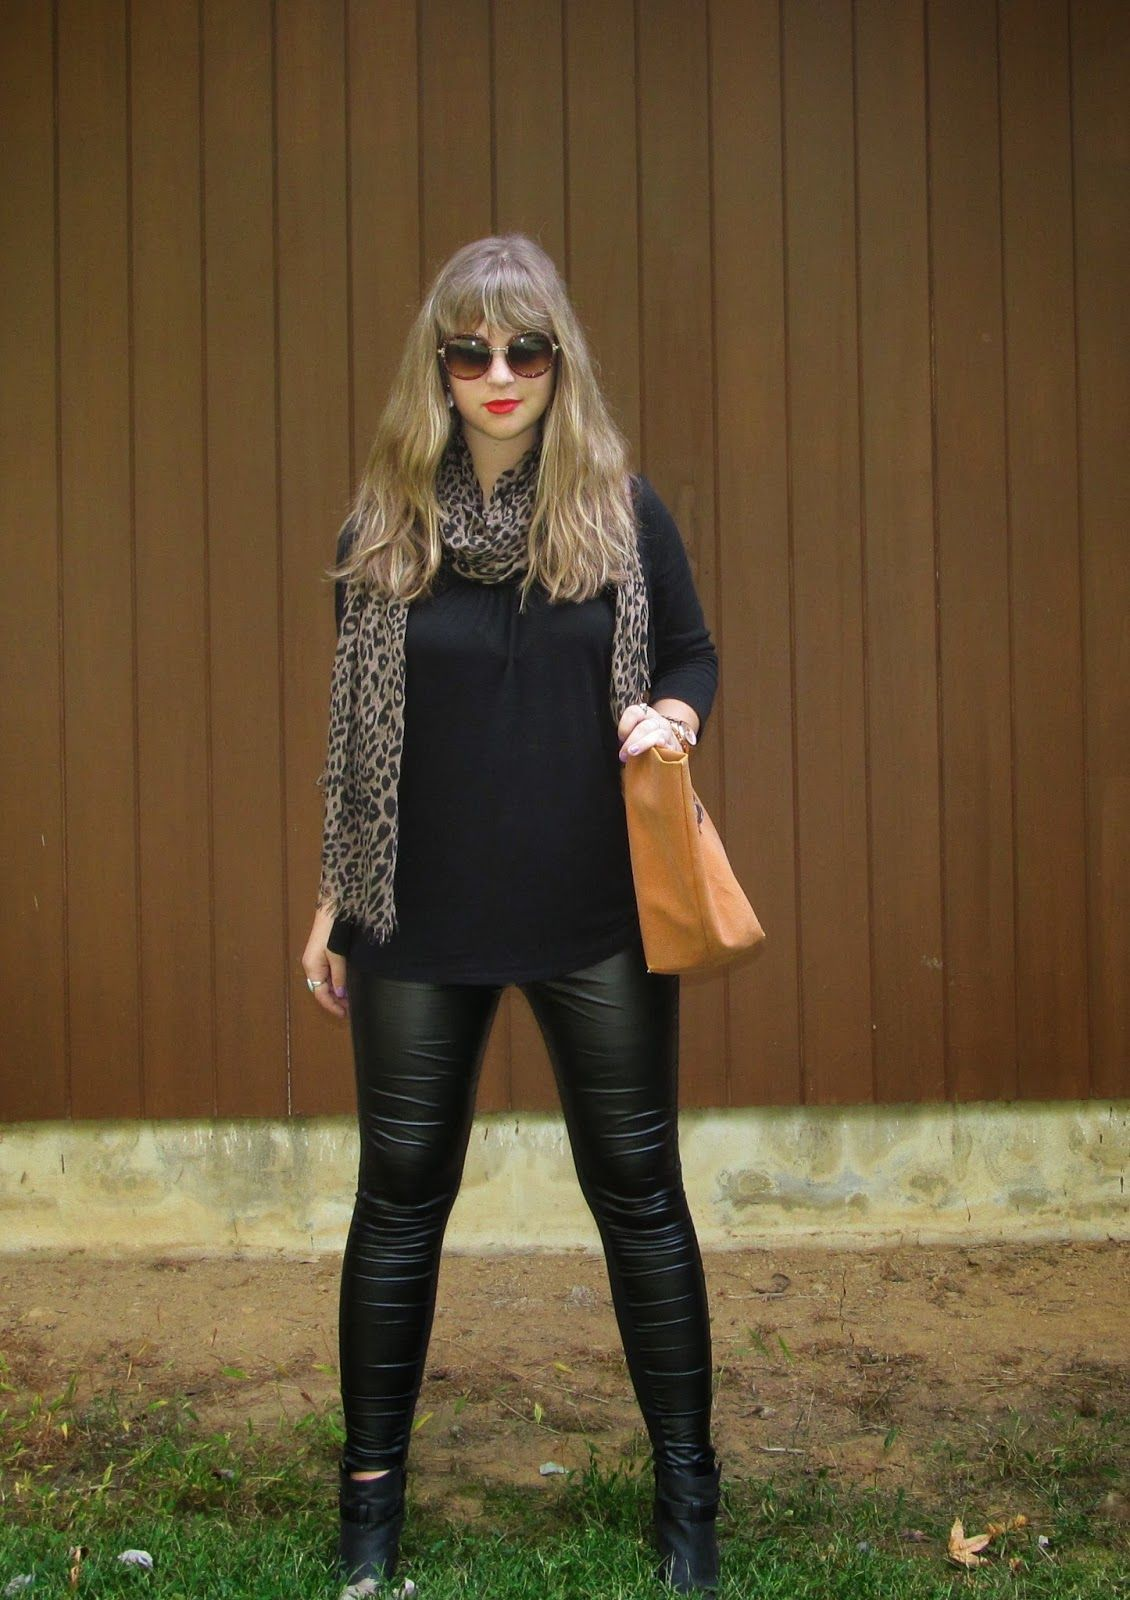 Round Sunnies and Faux Leather Leggings